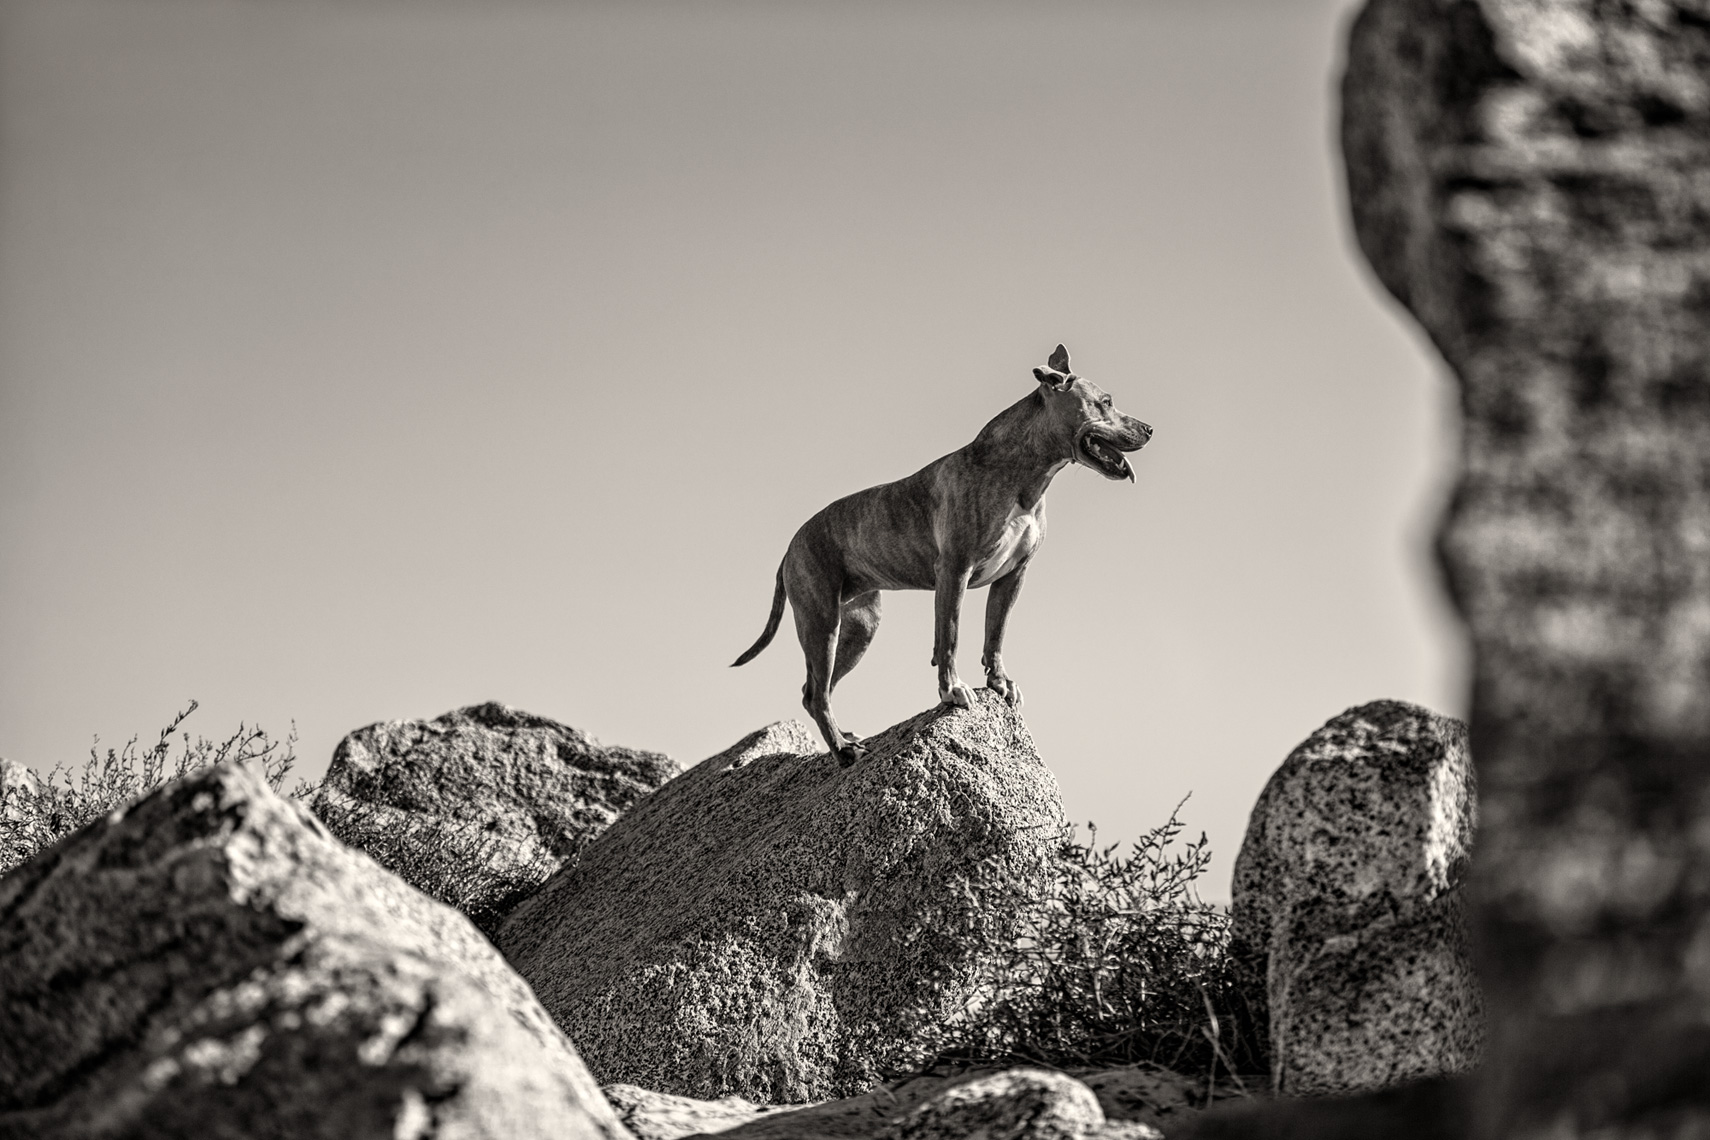 Los Angeles Dog Photography, Michael Brian, Pit Bull on rocks at Padero Beach, California